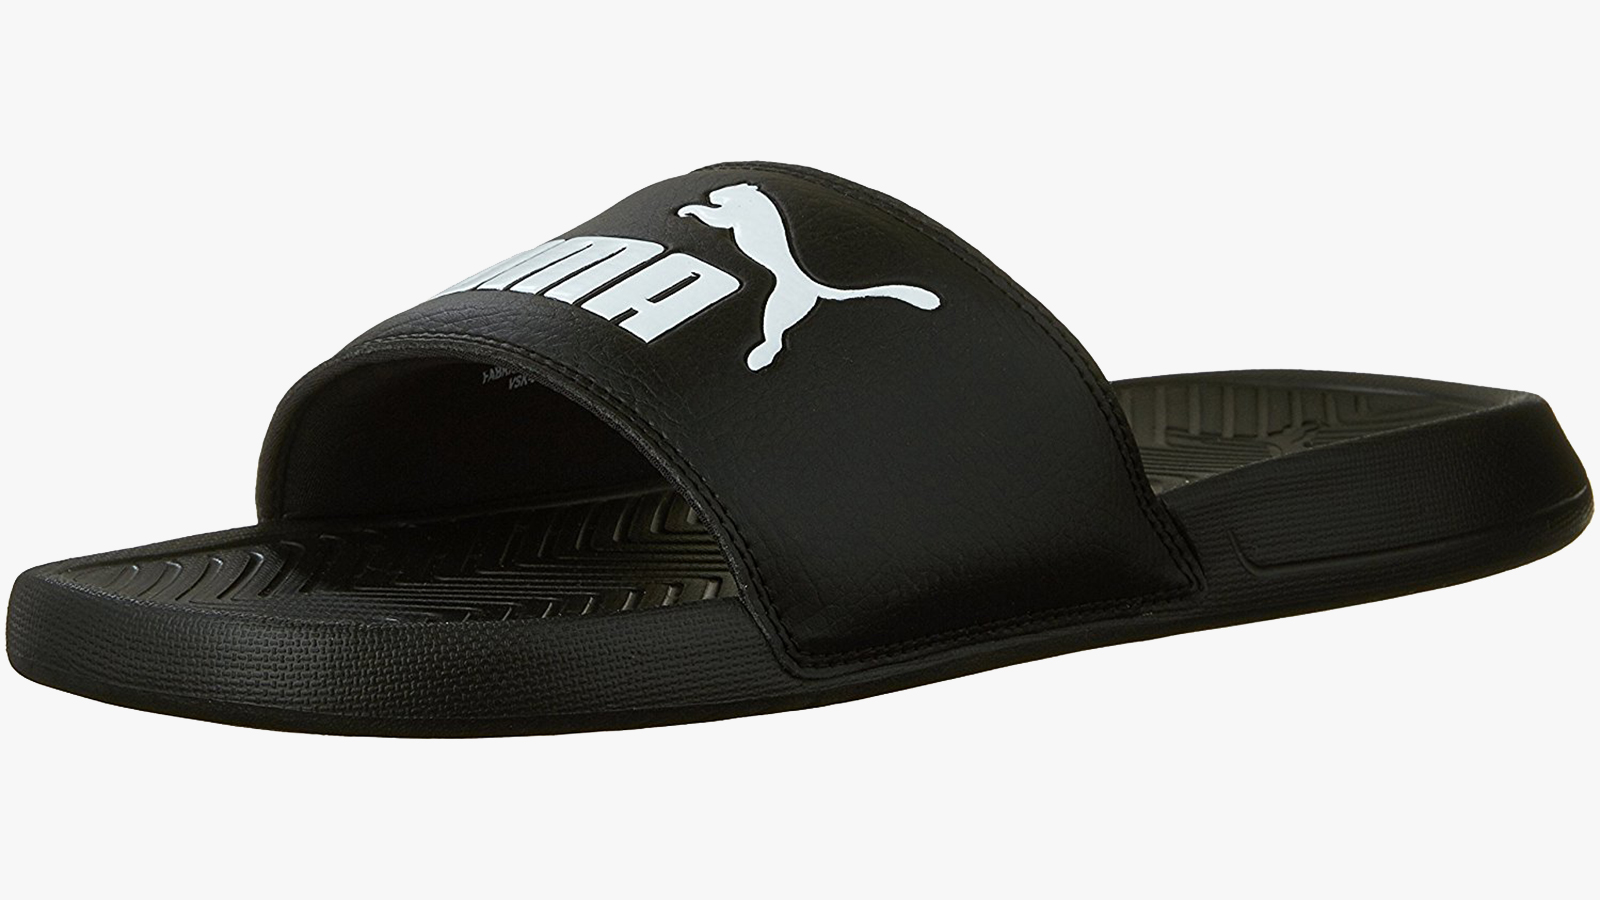 Puma Best Men's Slides